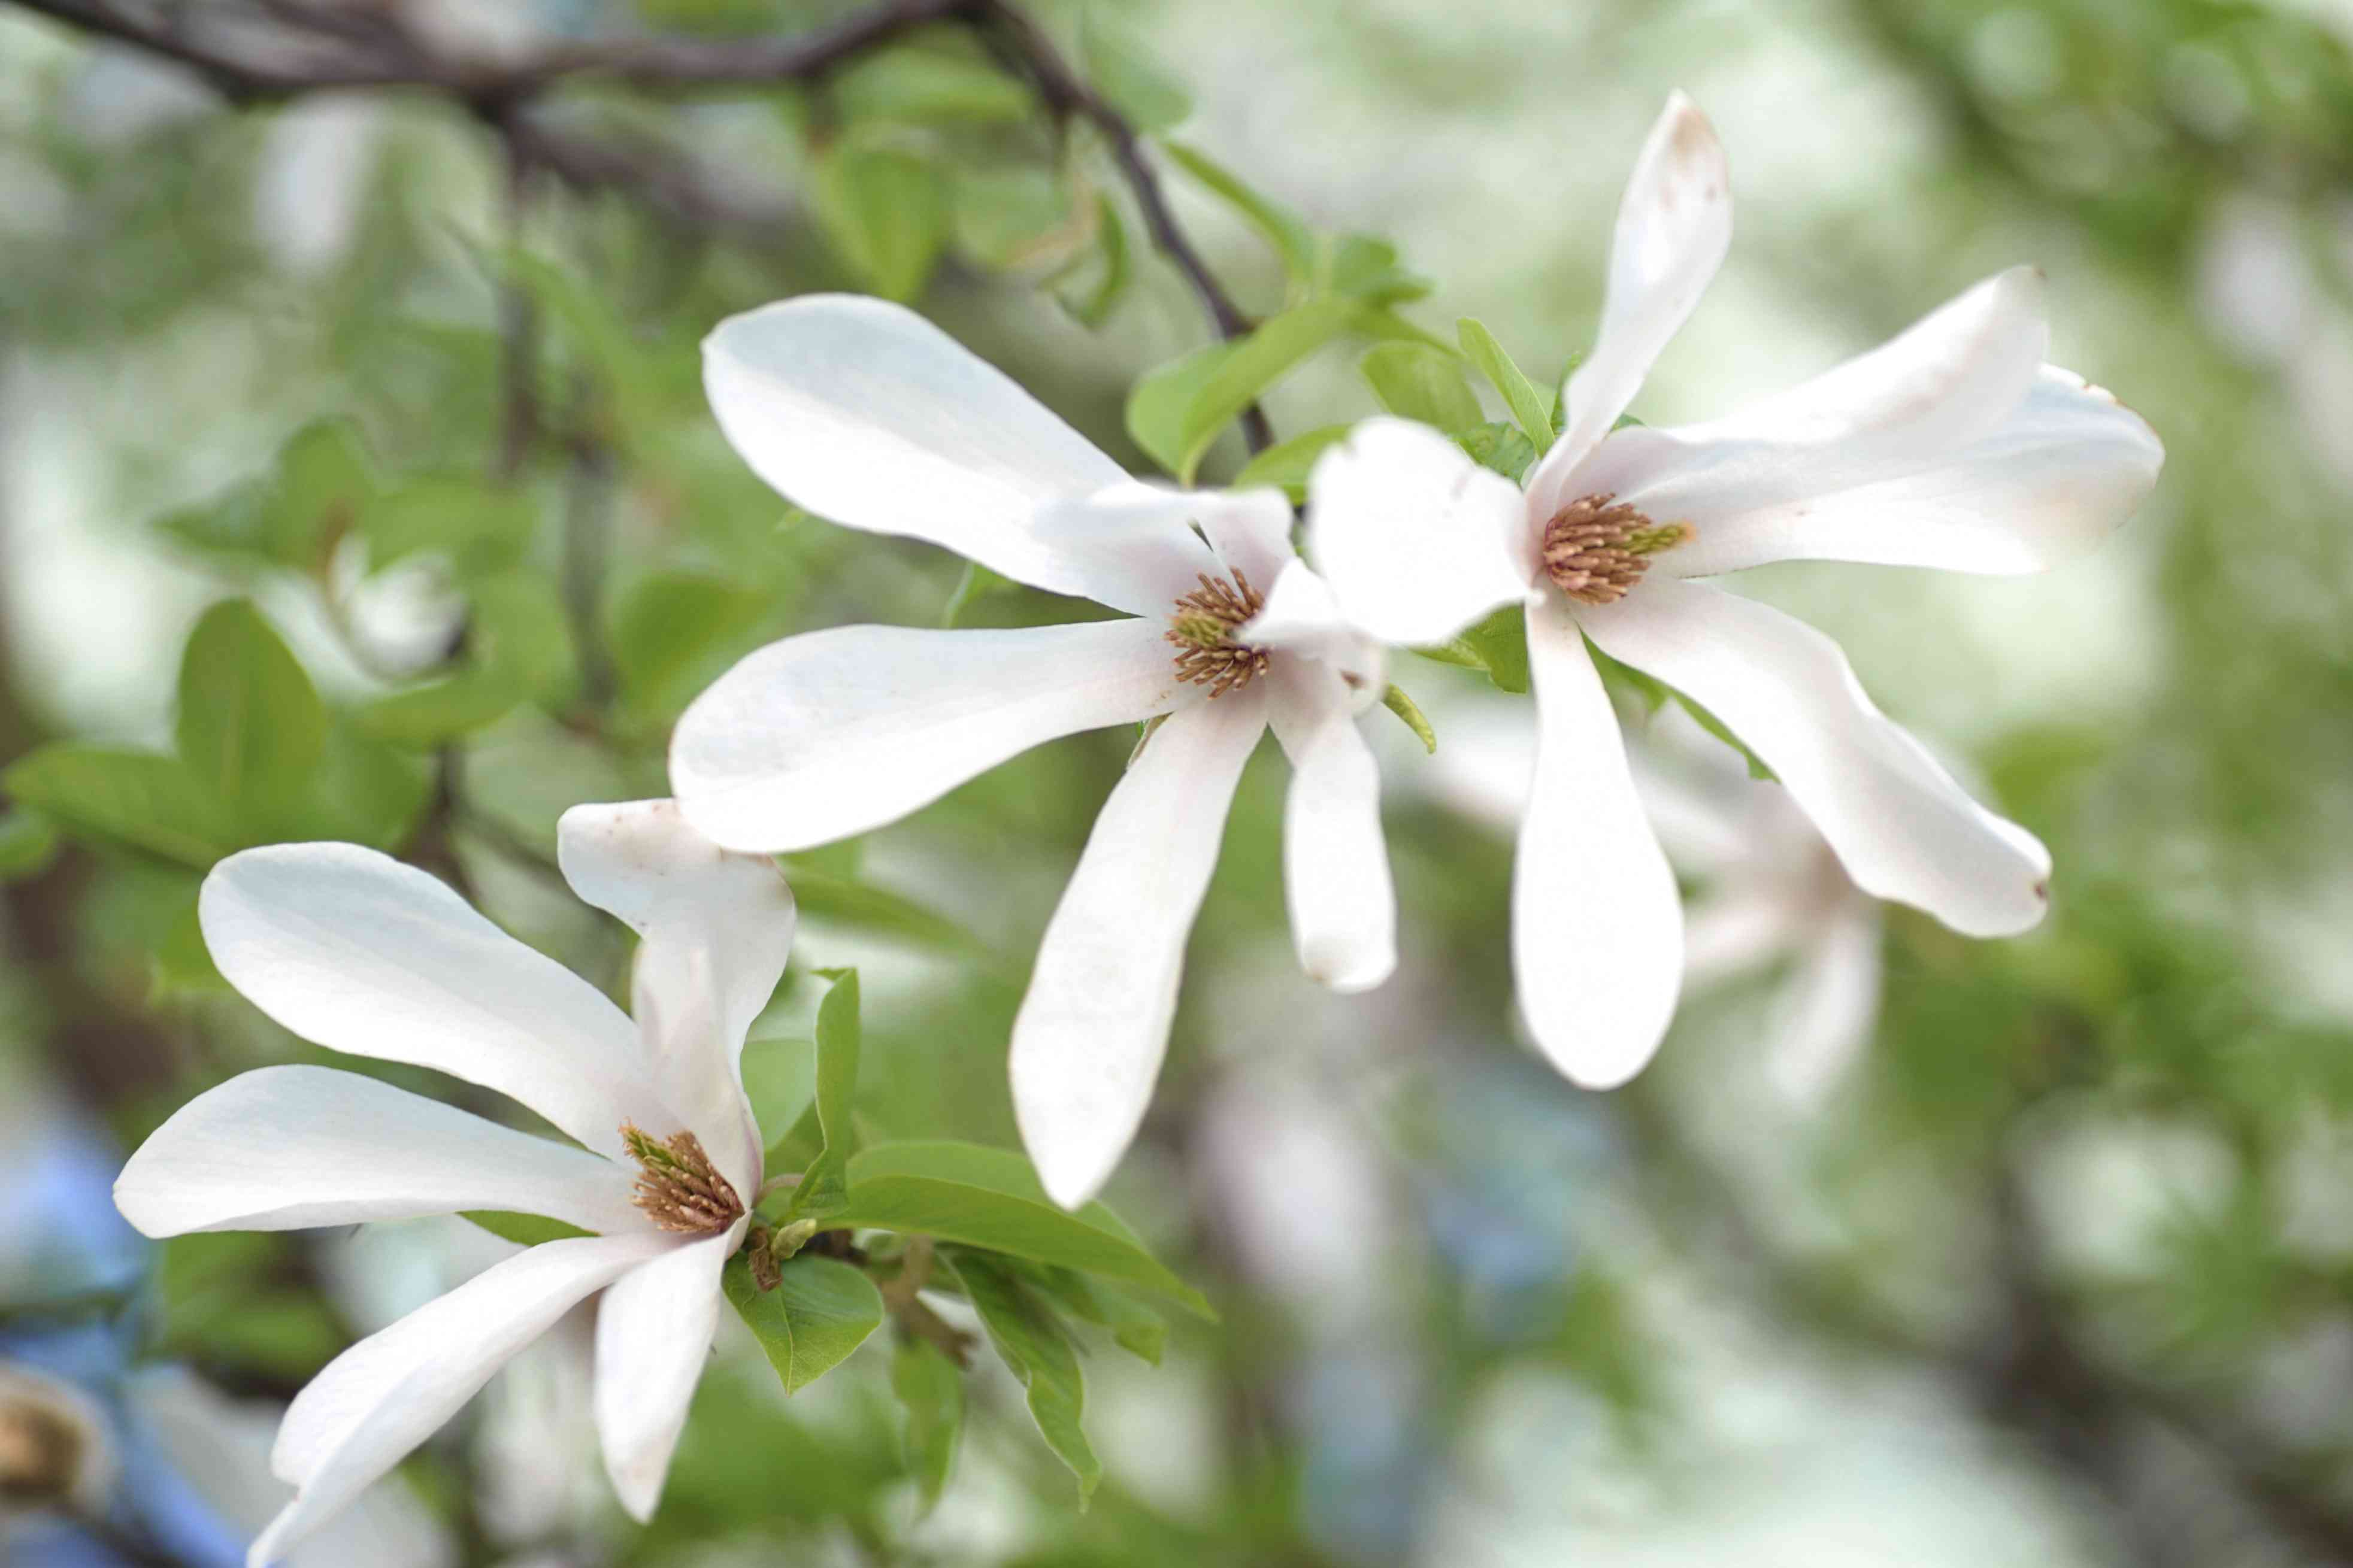 Kobus magnolia tree with three white flowers hanging from branches closeup